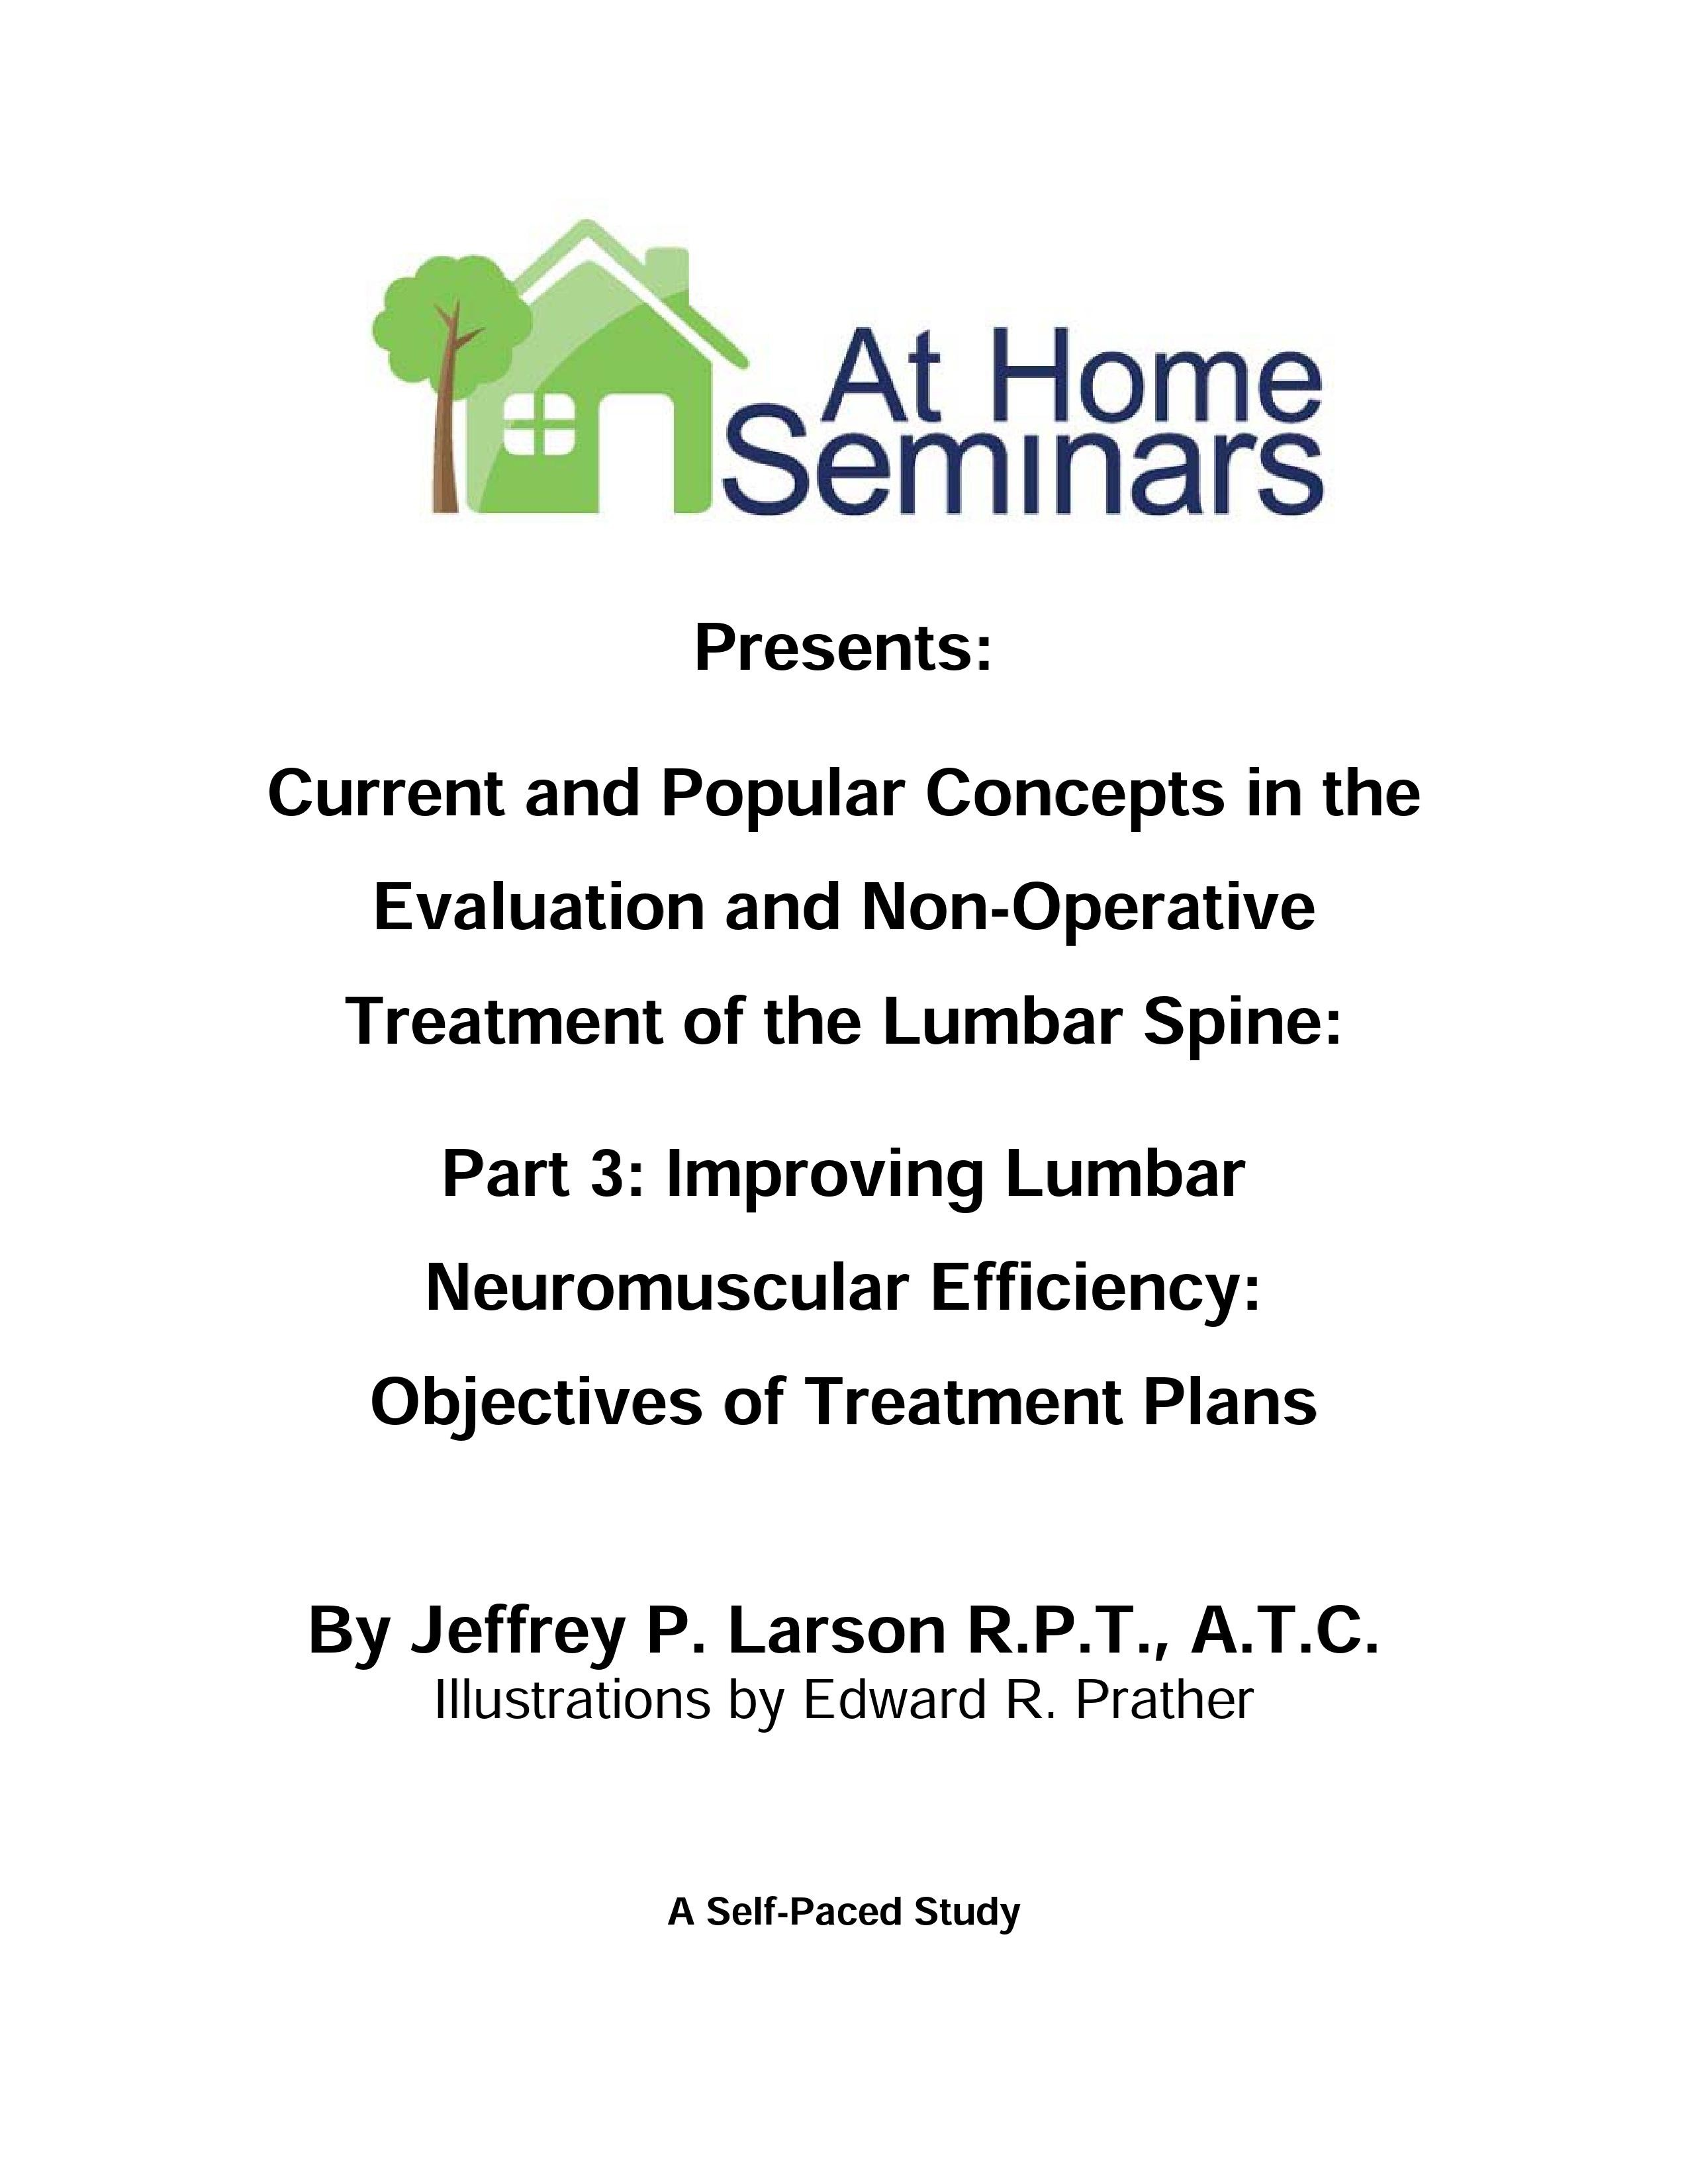 Current & Popular Concepts in the Evaluation and Non-Operative Treatment of the Lumbar Spine: Part 3: Improving Lumbar Neuromuscular Efficiency: Objectives of Treatment Plans (Electronic Download)